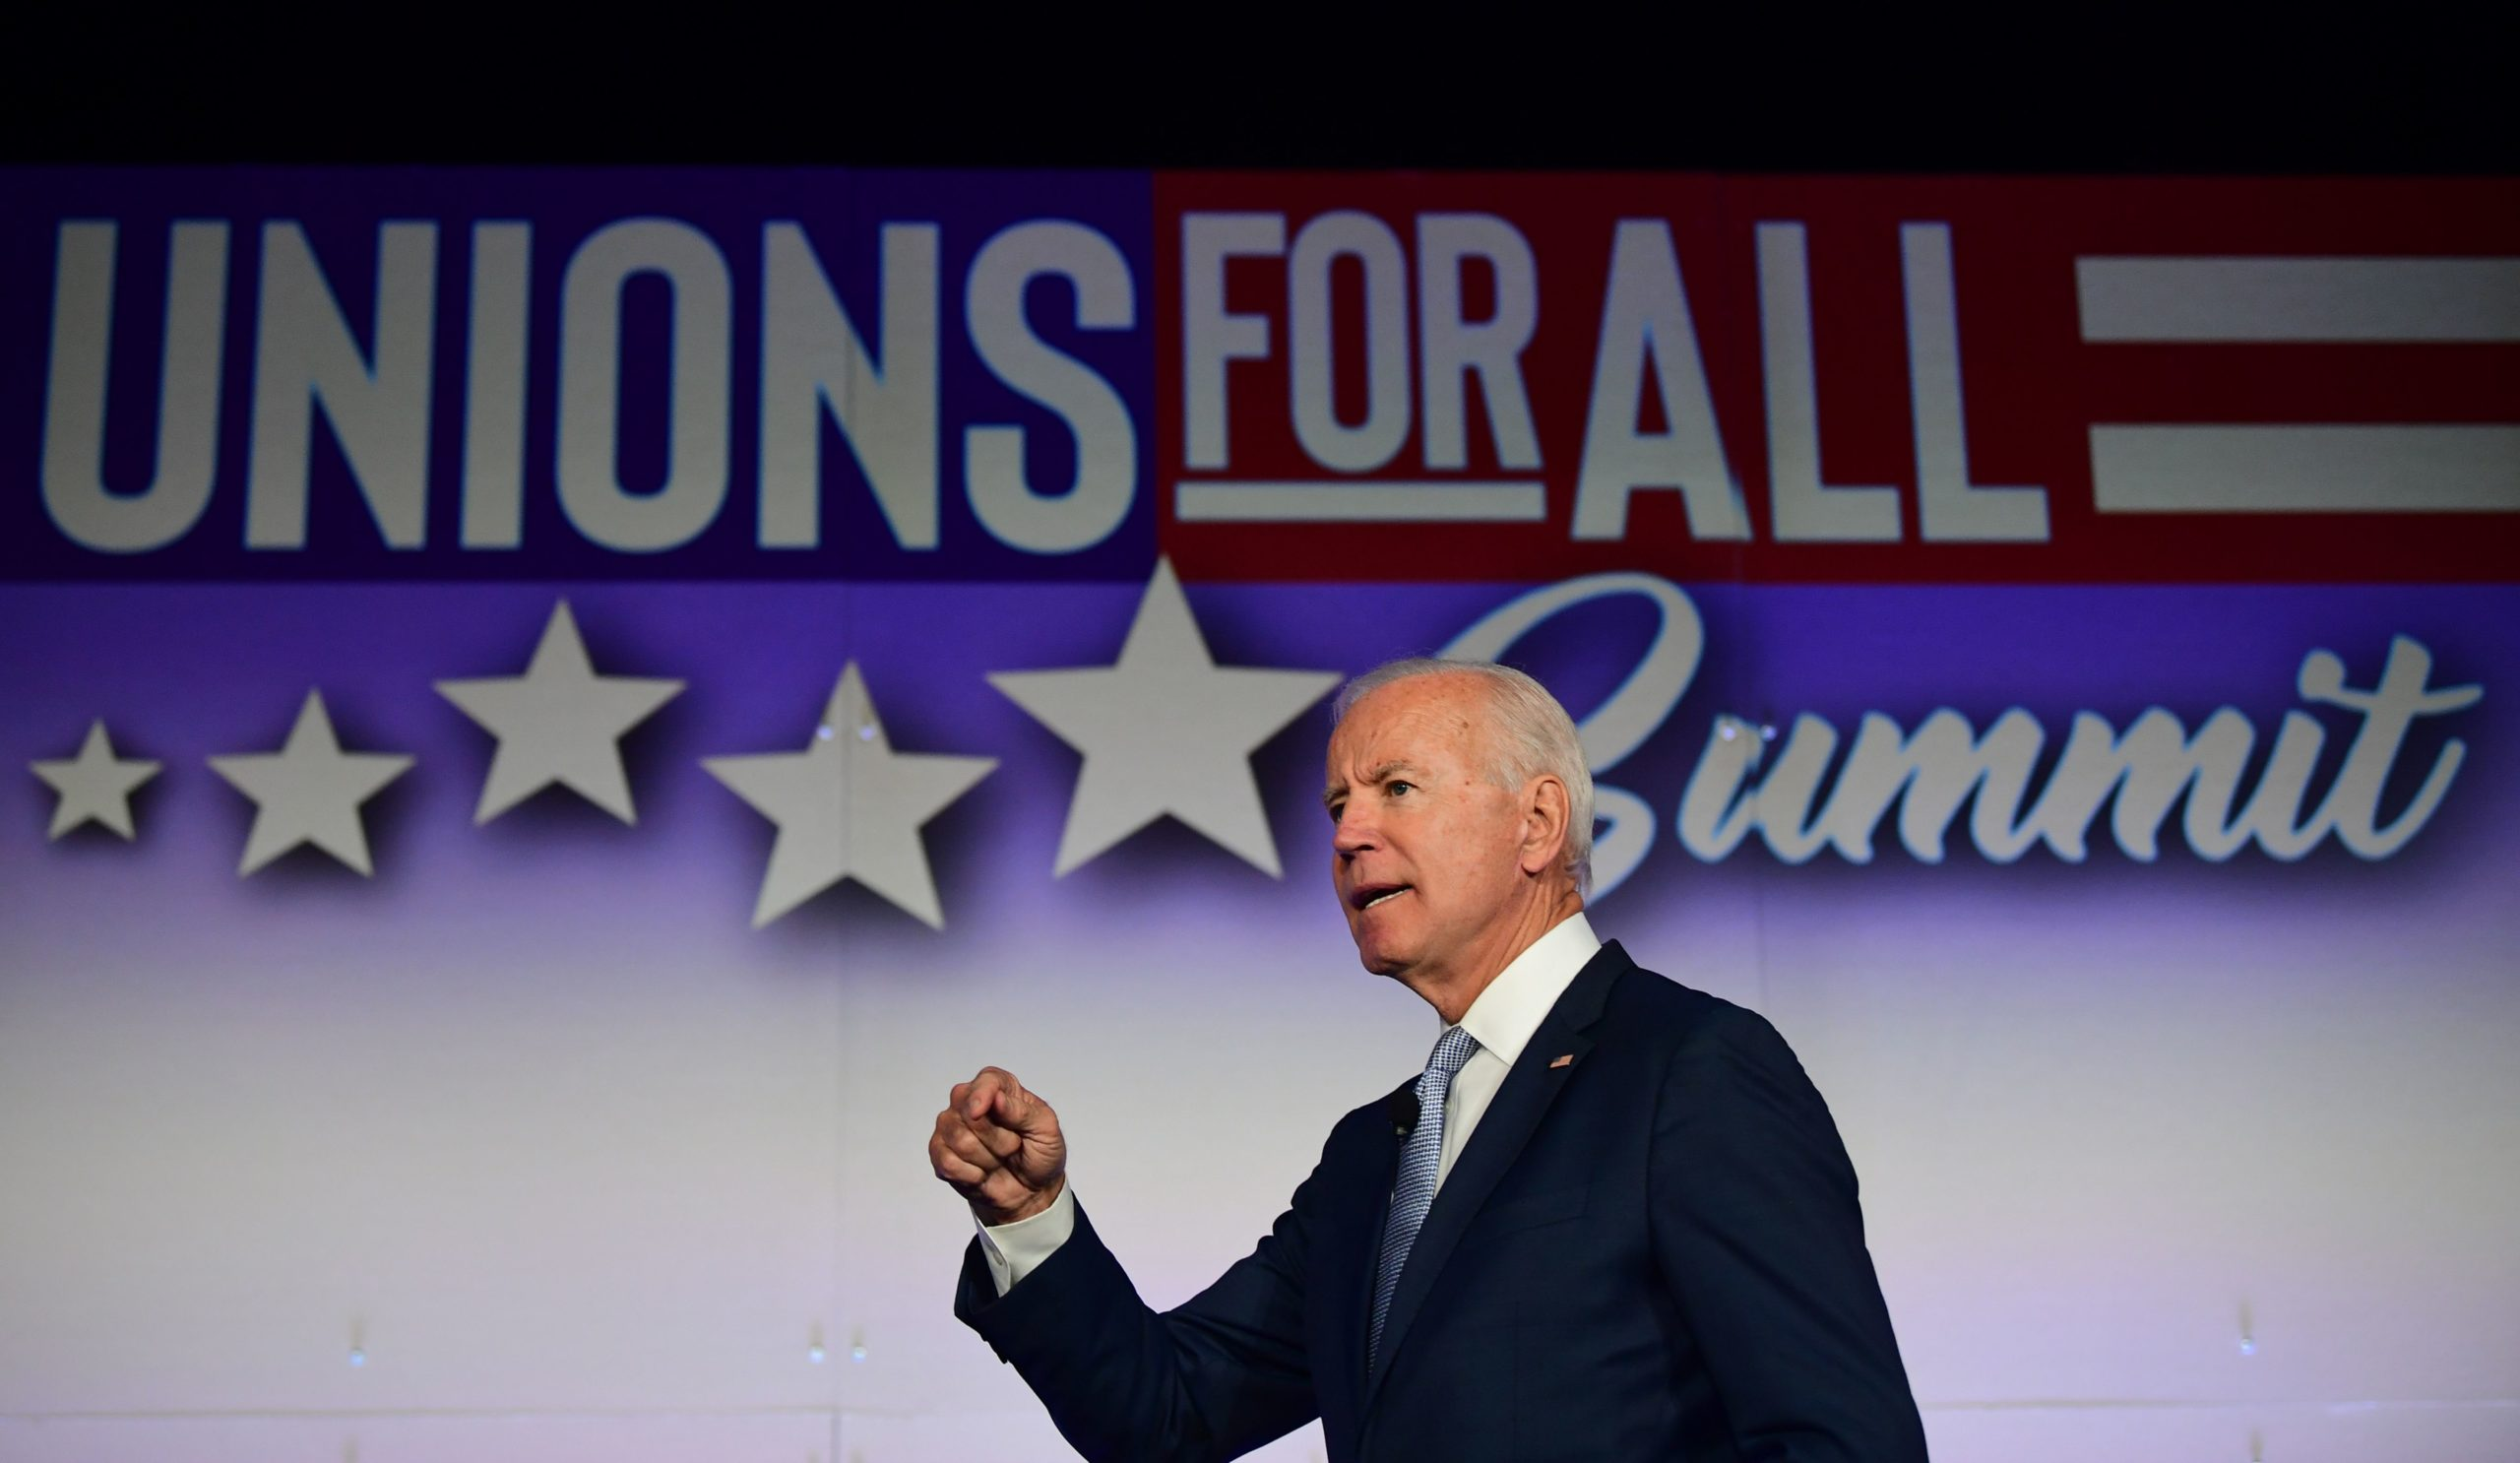 President Joe Biden speaks at the SEIU Unions for All Summit in Los Angeles, California on Oct. 4, 2019. (Frederic J. Brown/AFP via Getty Images)